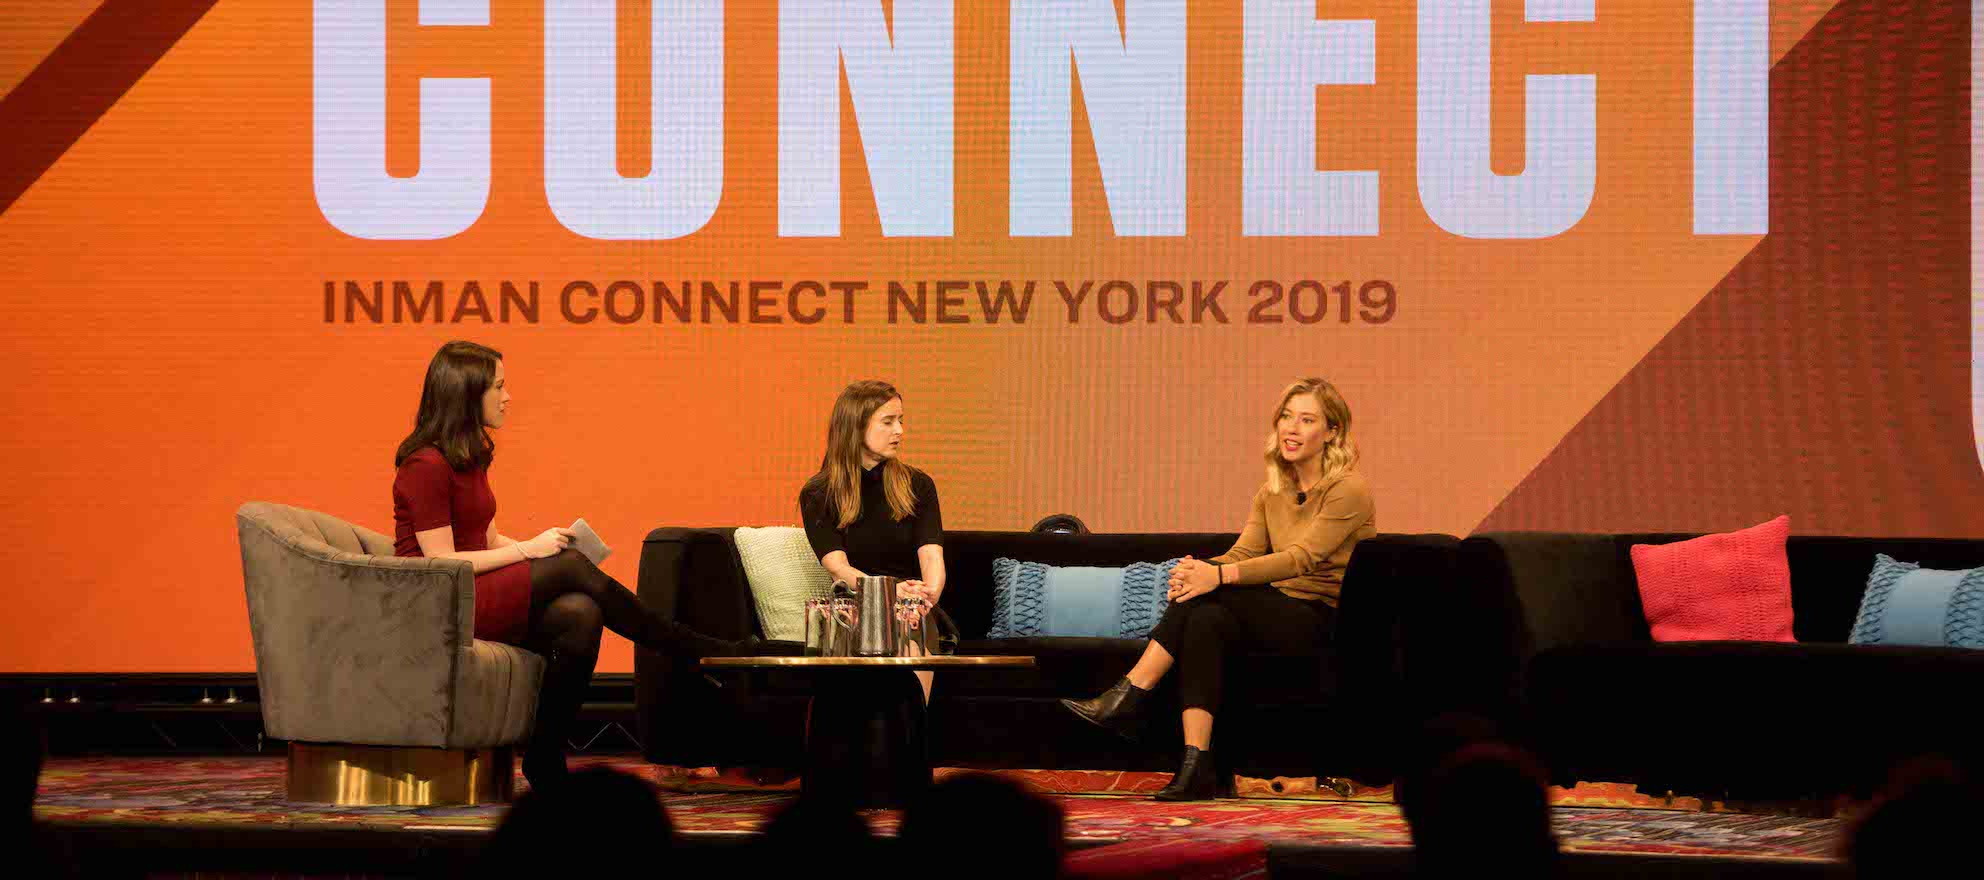 iBuyer panel Inman Connect New York 2019 ICNY 19